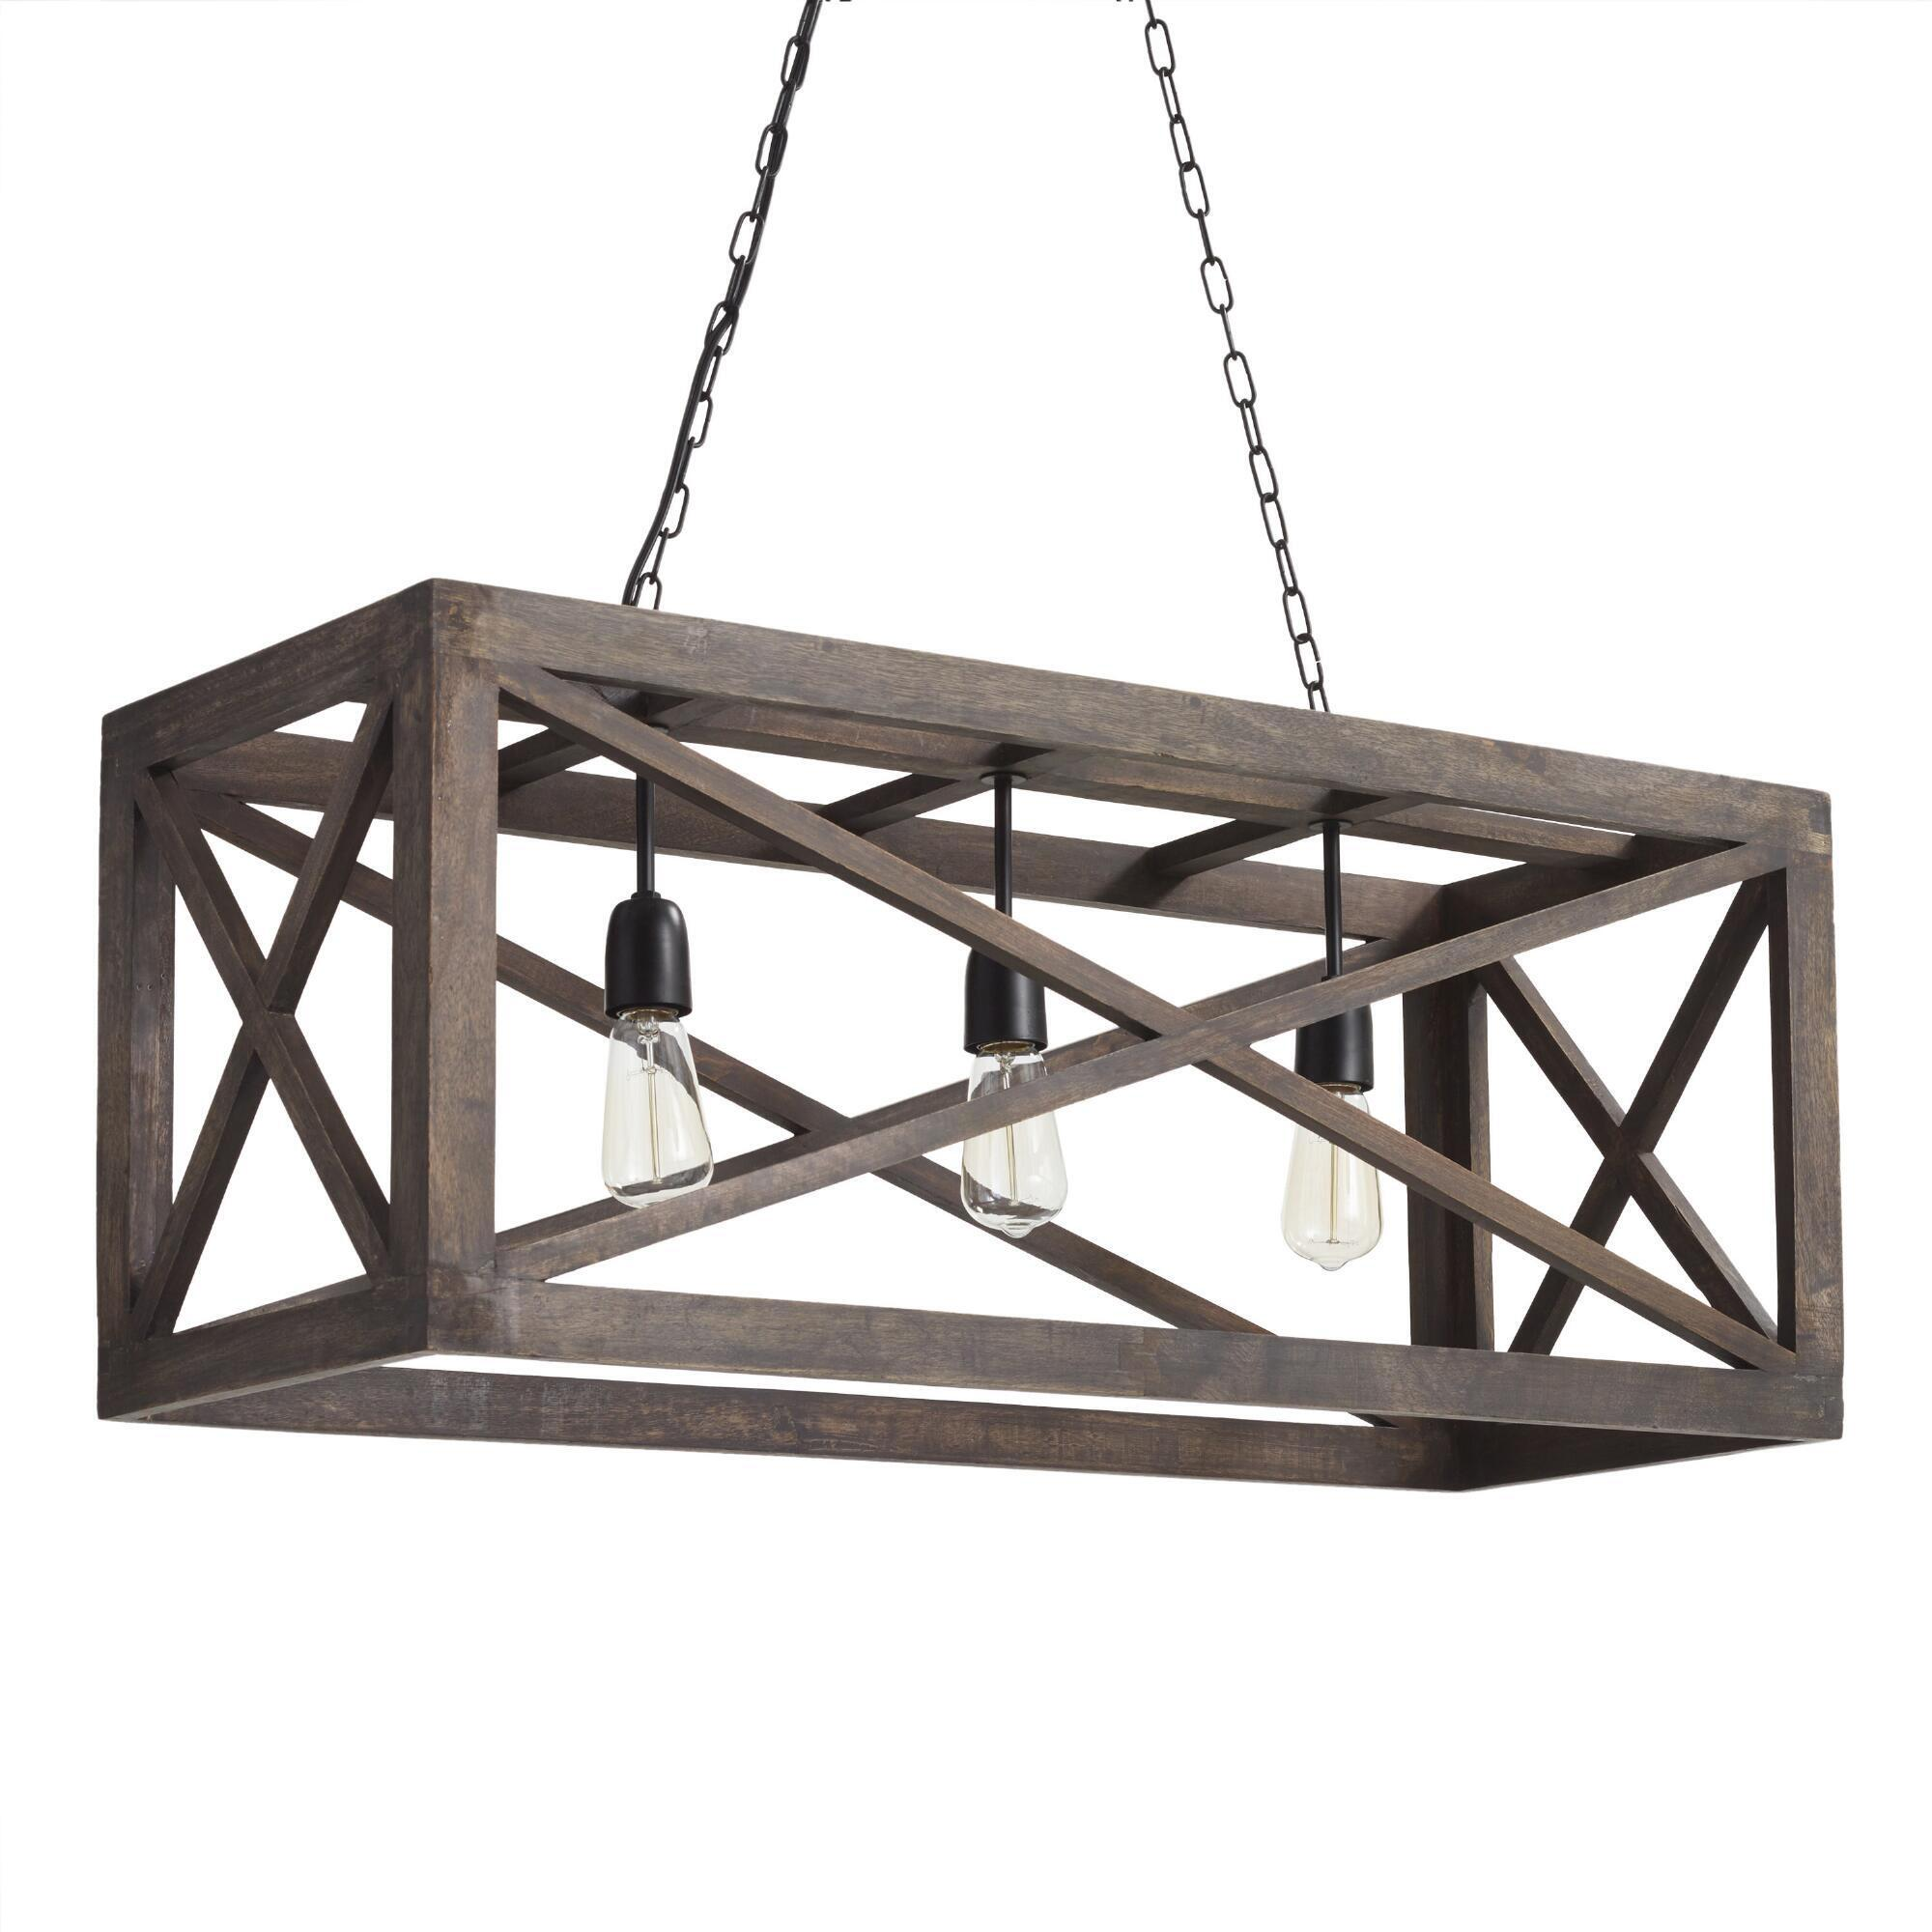 Pendant lighting light fixtures chandeliers world market rectangular gray wood 3 light valencia chandelier arubaitofo Gallery